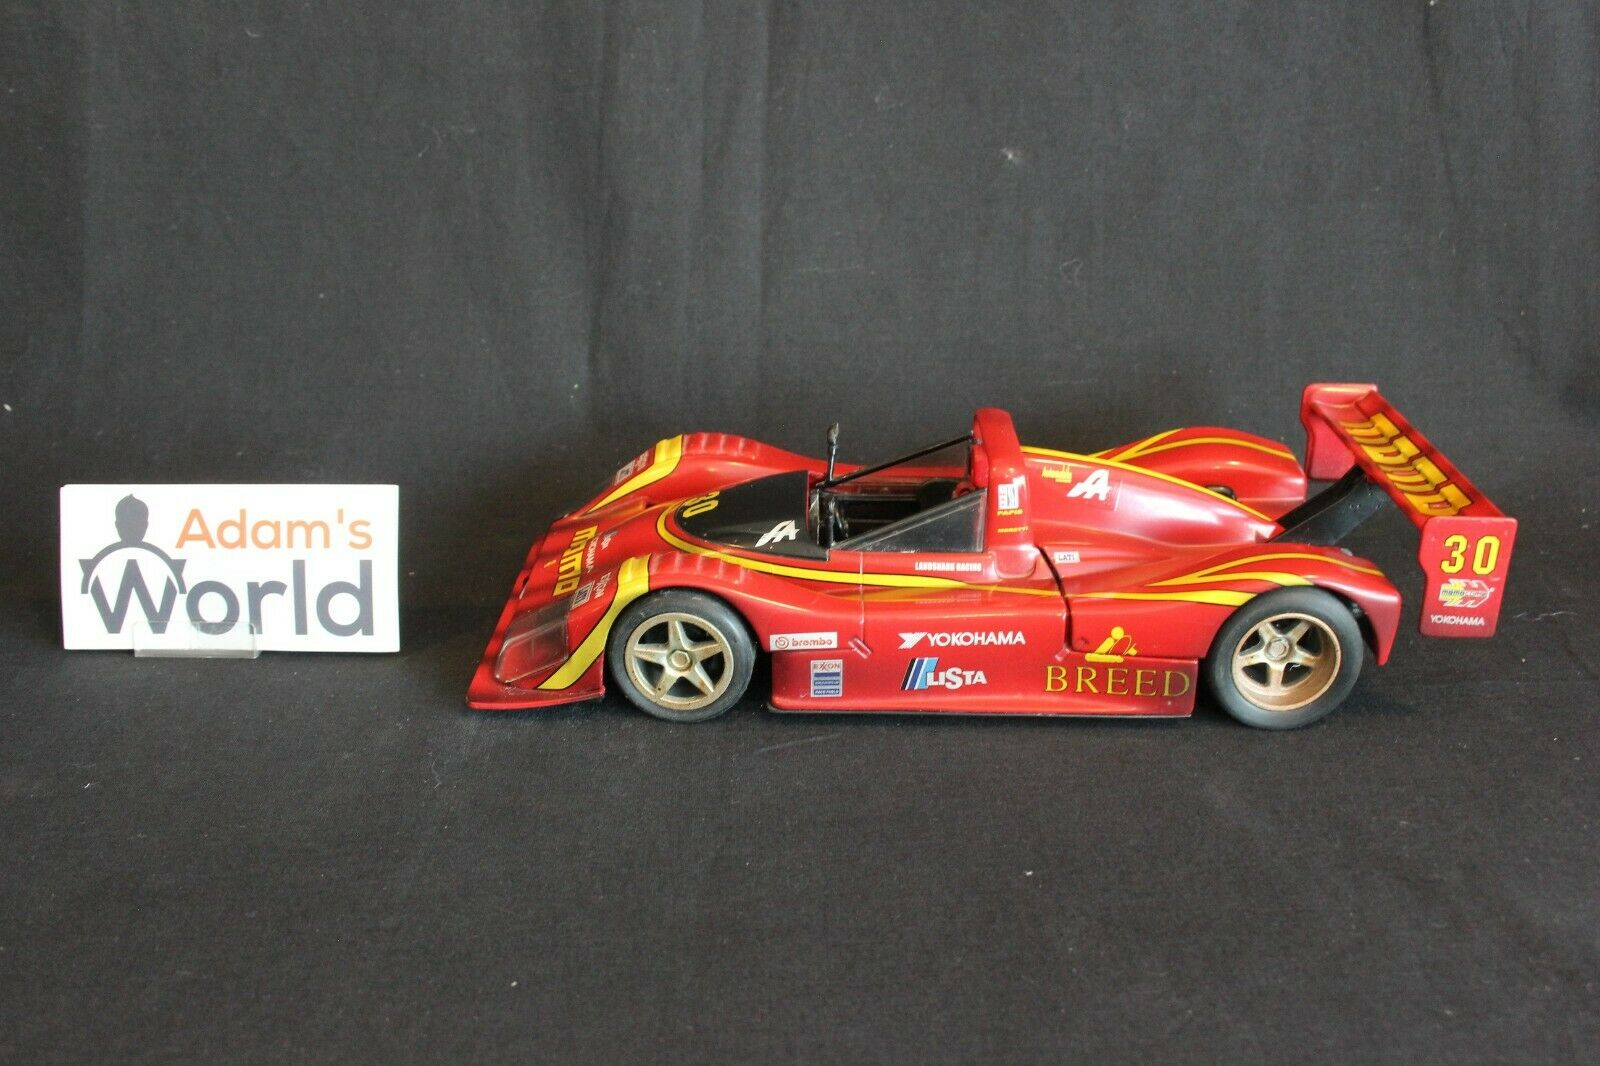 Hot Wheels Ferrari 333 SP 1998 1 18  30 Moretti   Luyendijk   Baldi (PJBB)